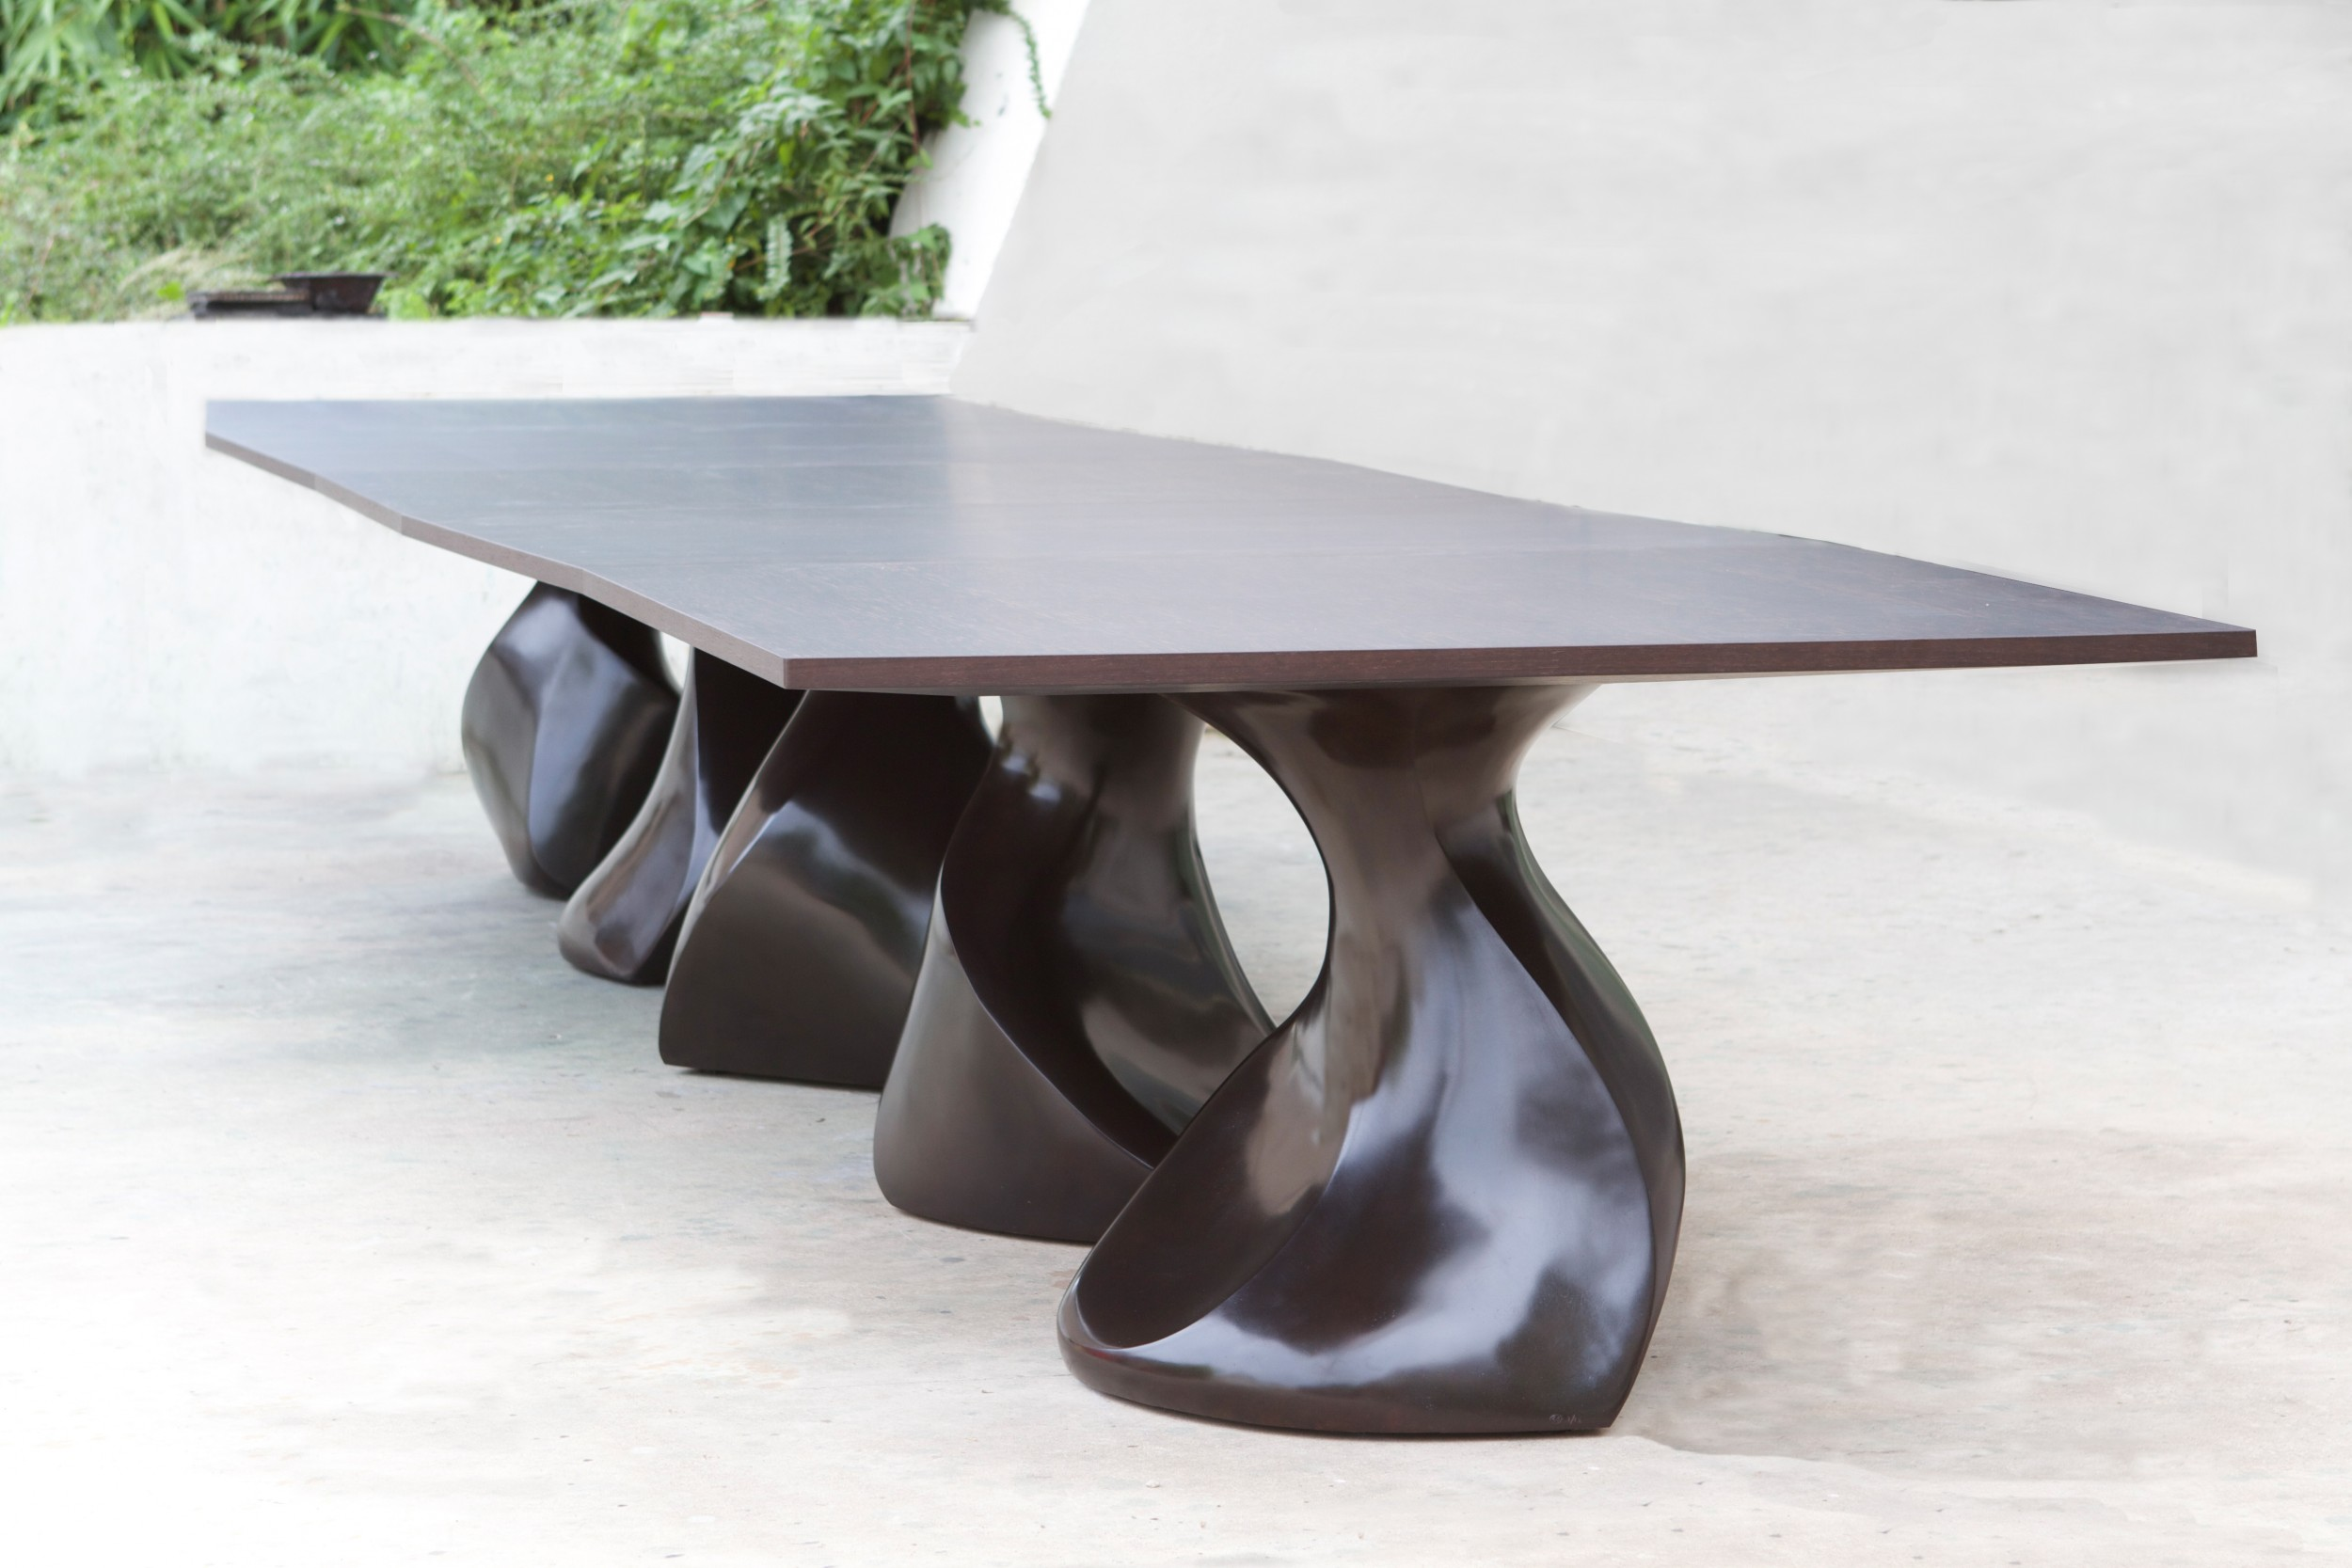 Craftsmanship Exclusive Interview with the Talented Eric Schmitt - Rocwood dining table craftsmanship Craftsmanship: Exclusive Interview with the Talented Eric Schmitt Craftsmanship Exclusive Interview with the Talented Eric Shmitt Rocwood dining table